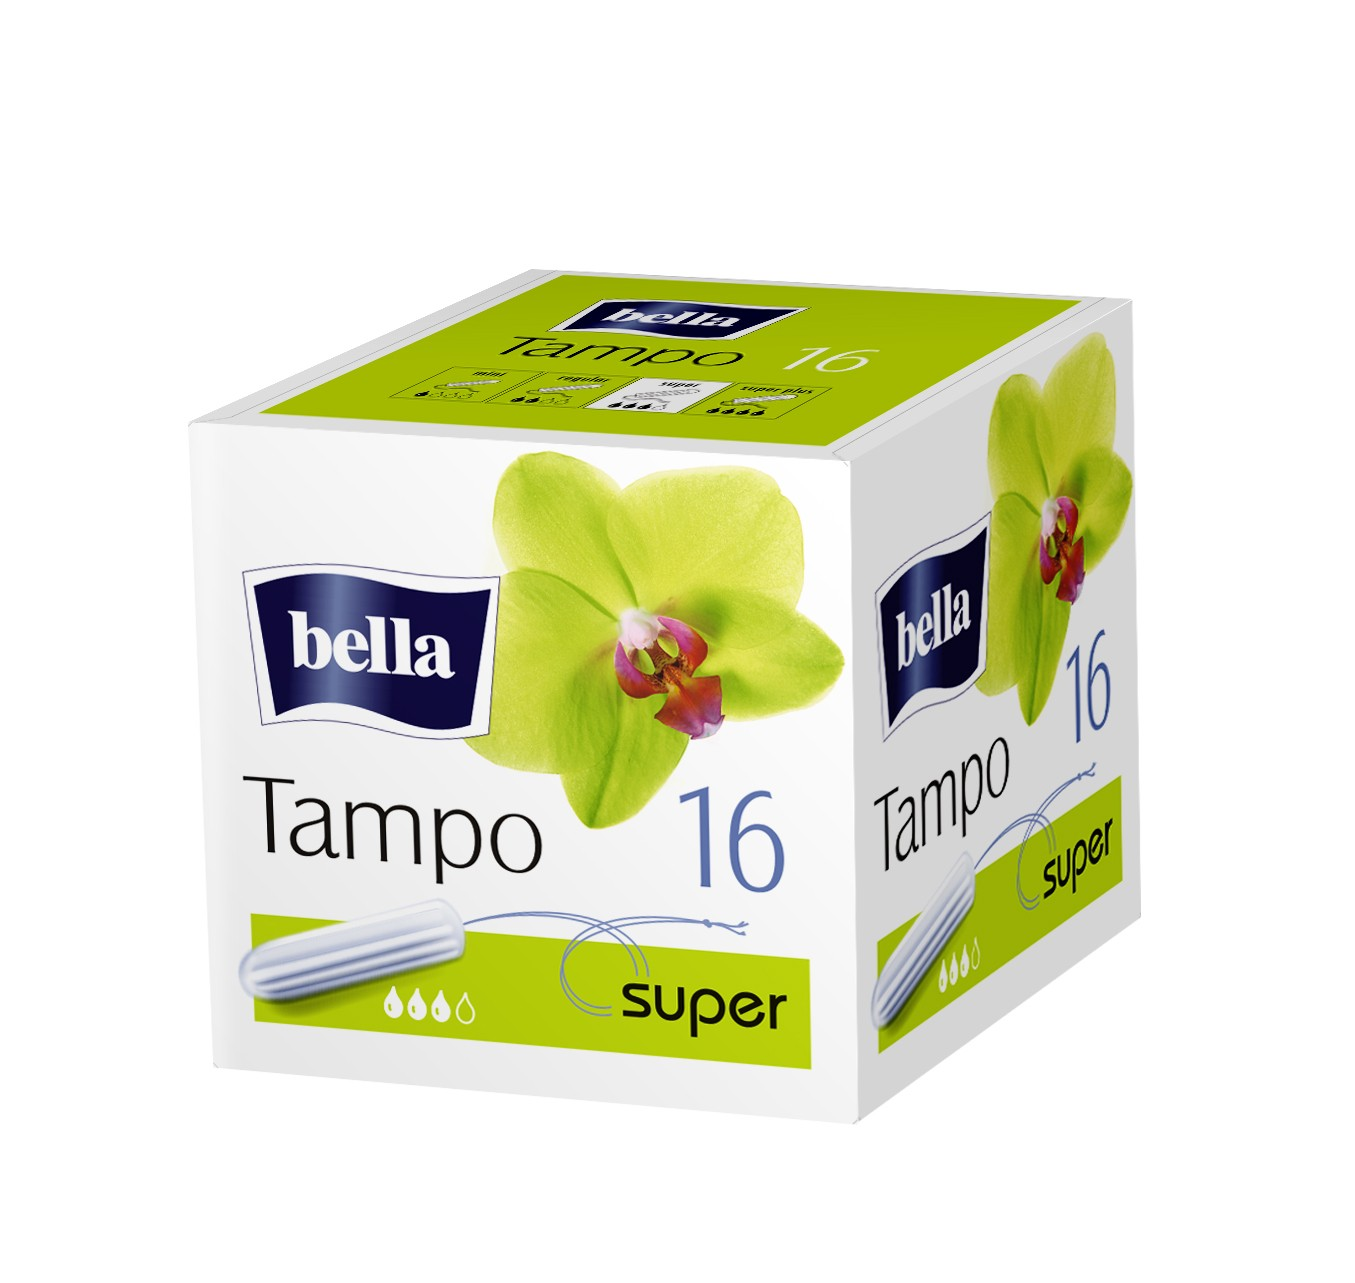 Bella Tampoo - Super